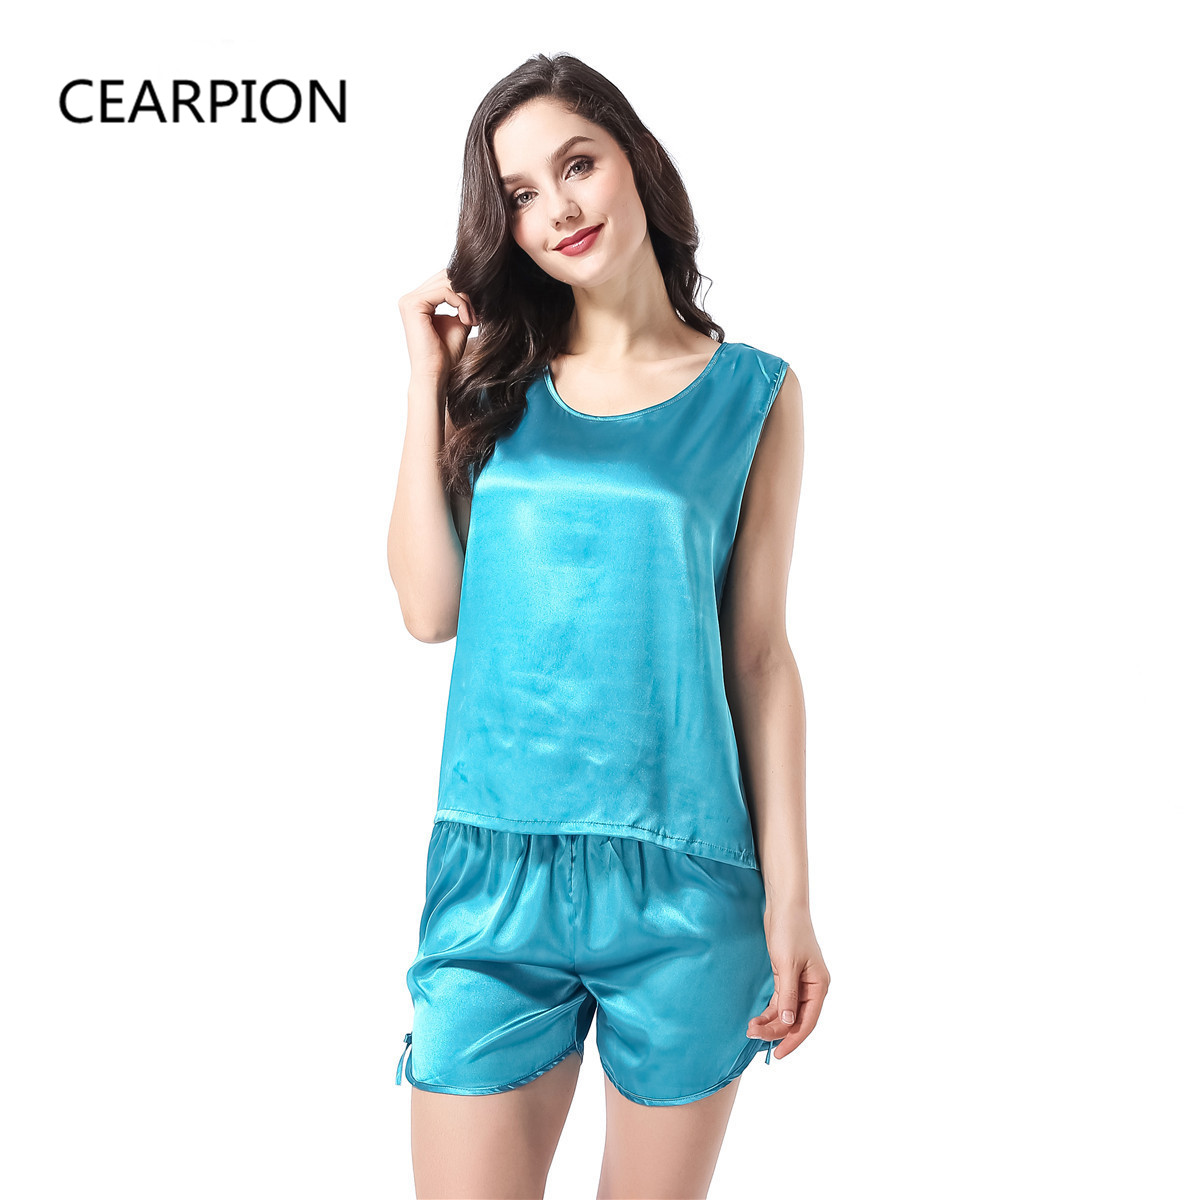 CEARPION Women   Pajamas     Set   Rayon 2PCS Strap Top&Shorts Sleepwear Femme Casual Nightwear Sexy Sleeveless Nightie Nightgown